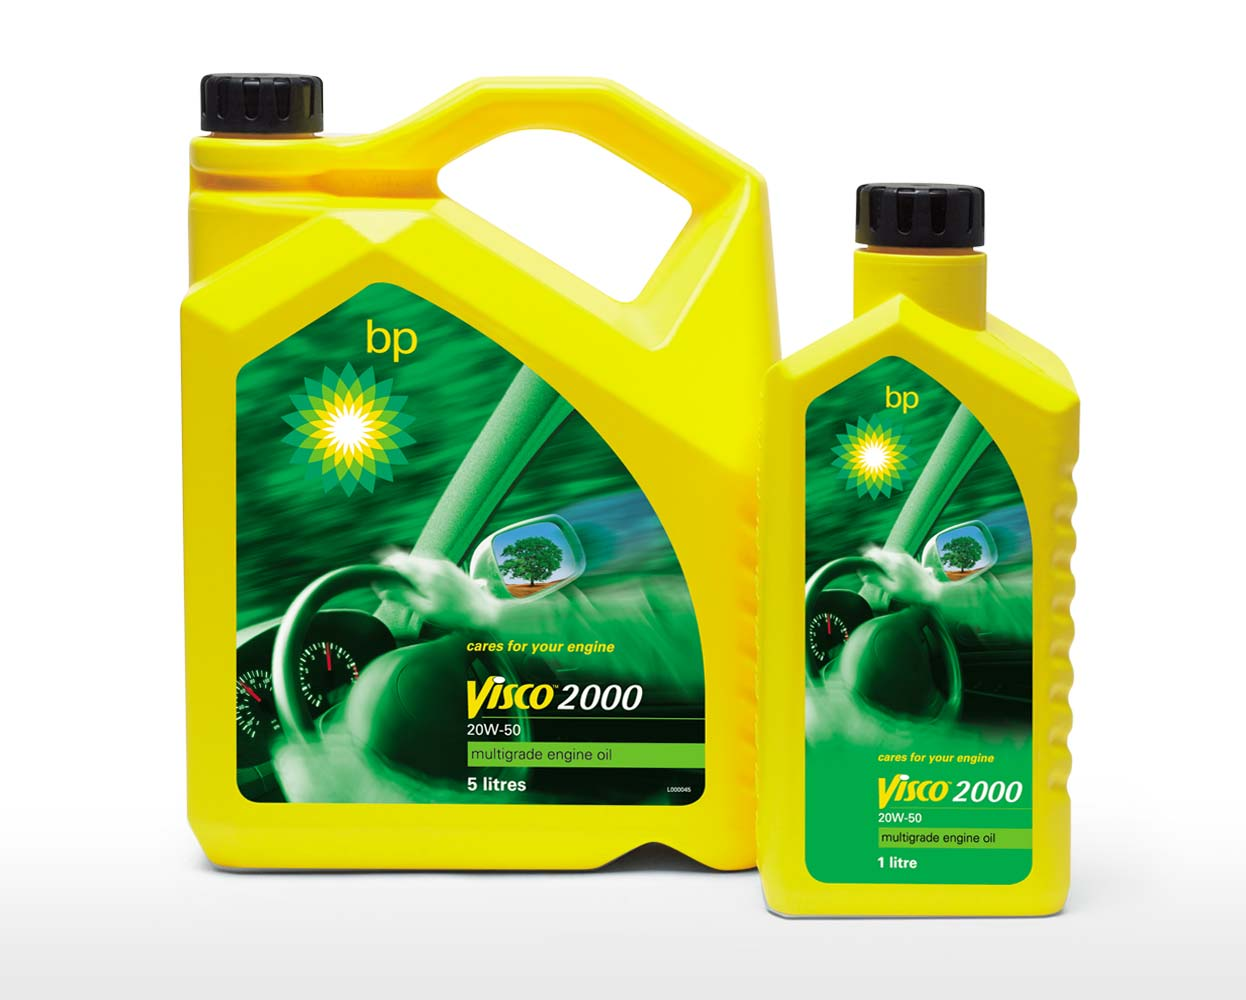 BP Packaging Visco 2000 Engine Oil Mela Creative